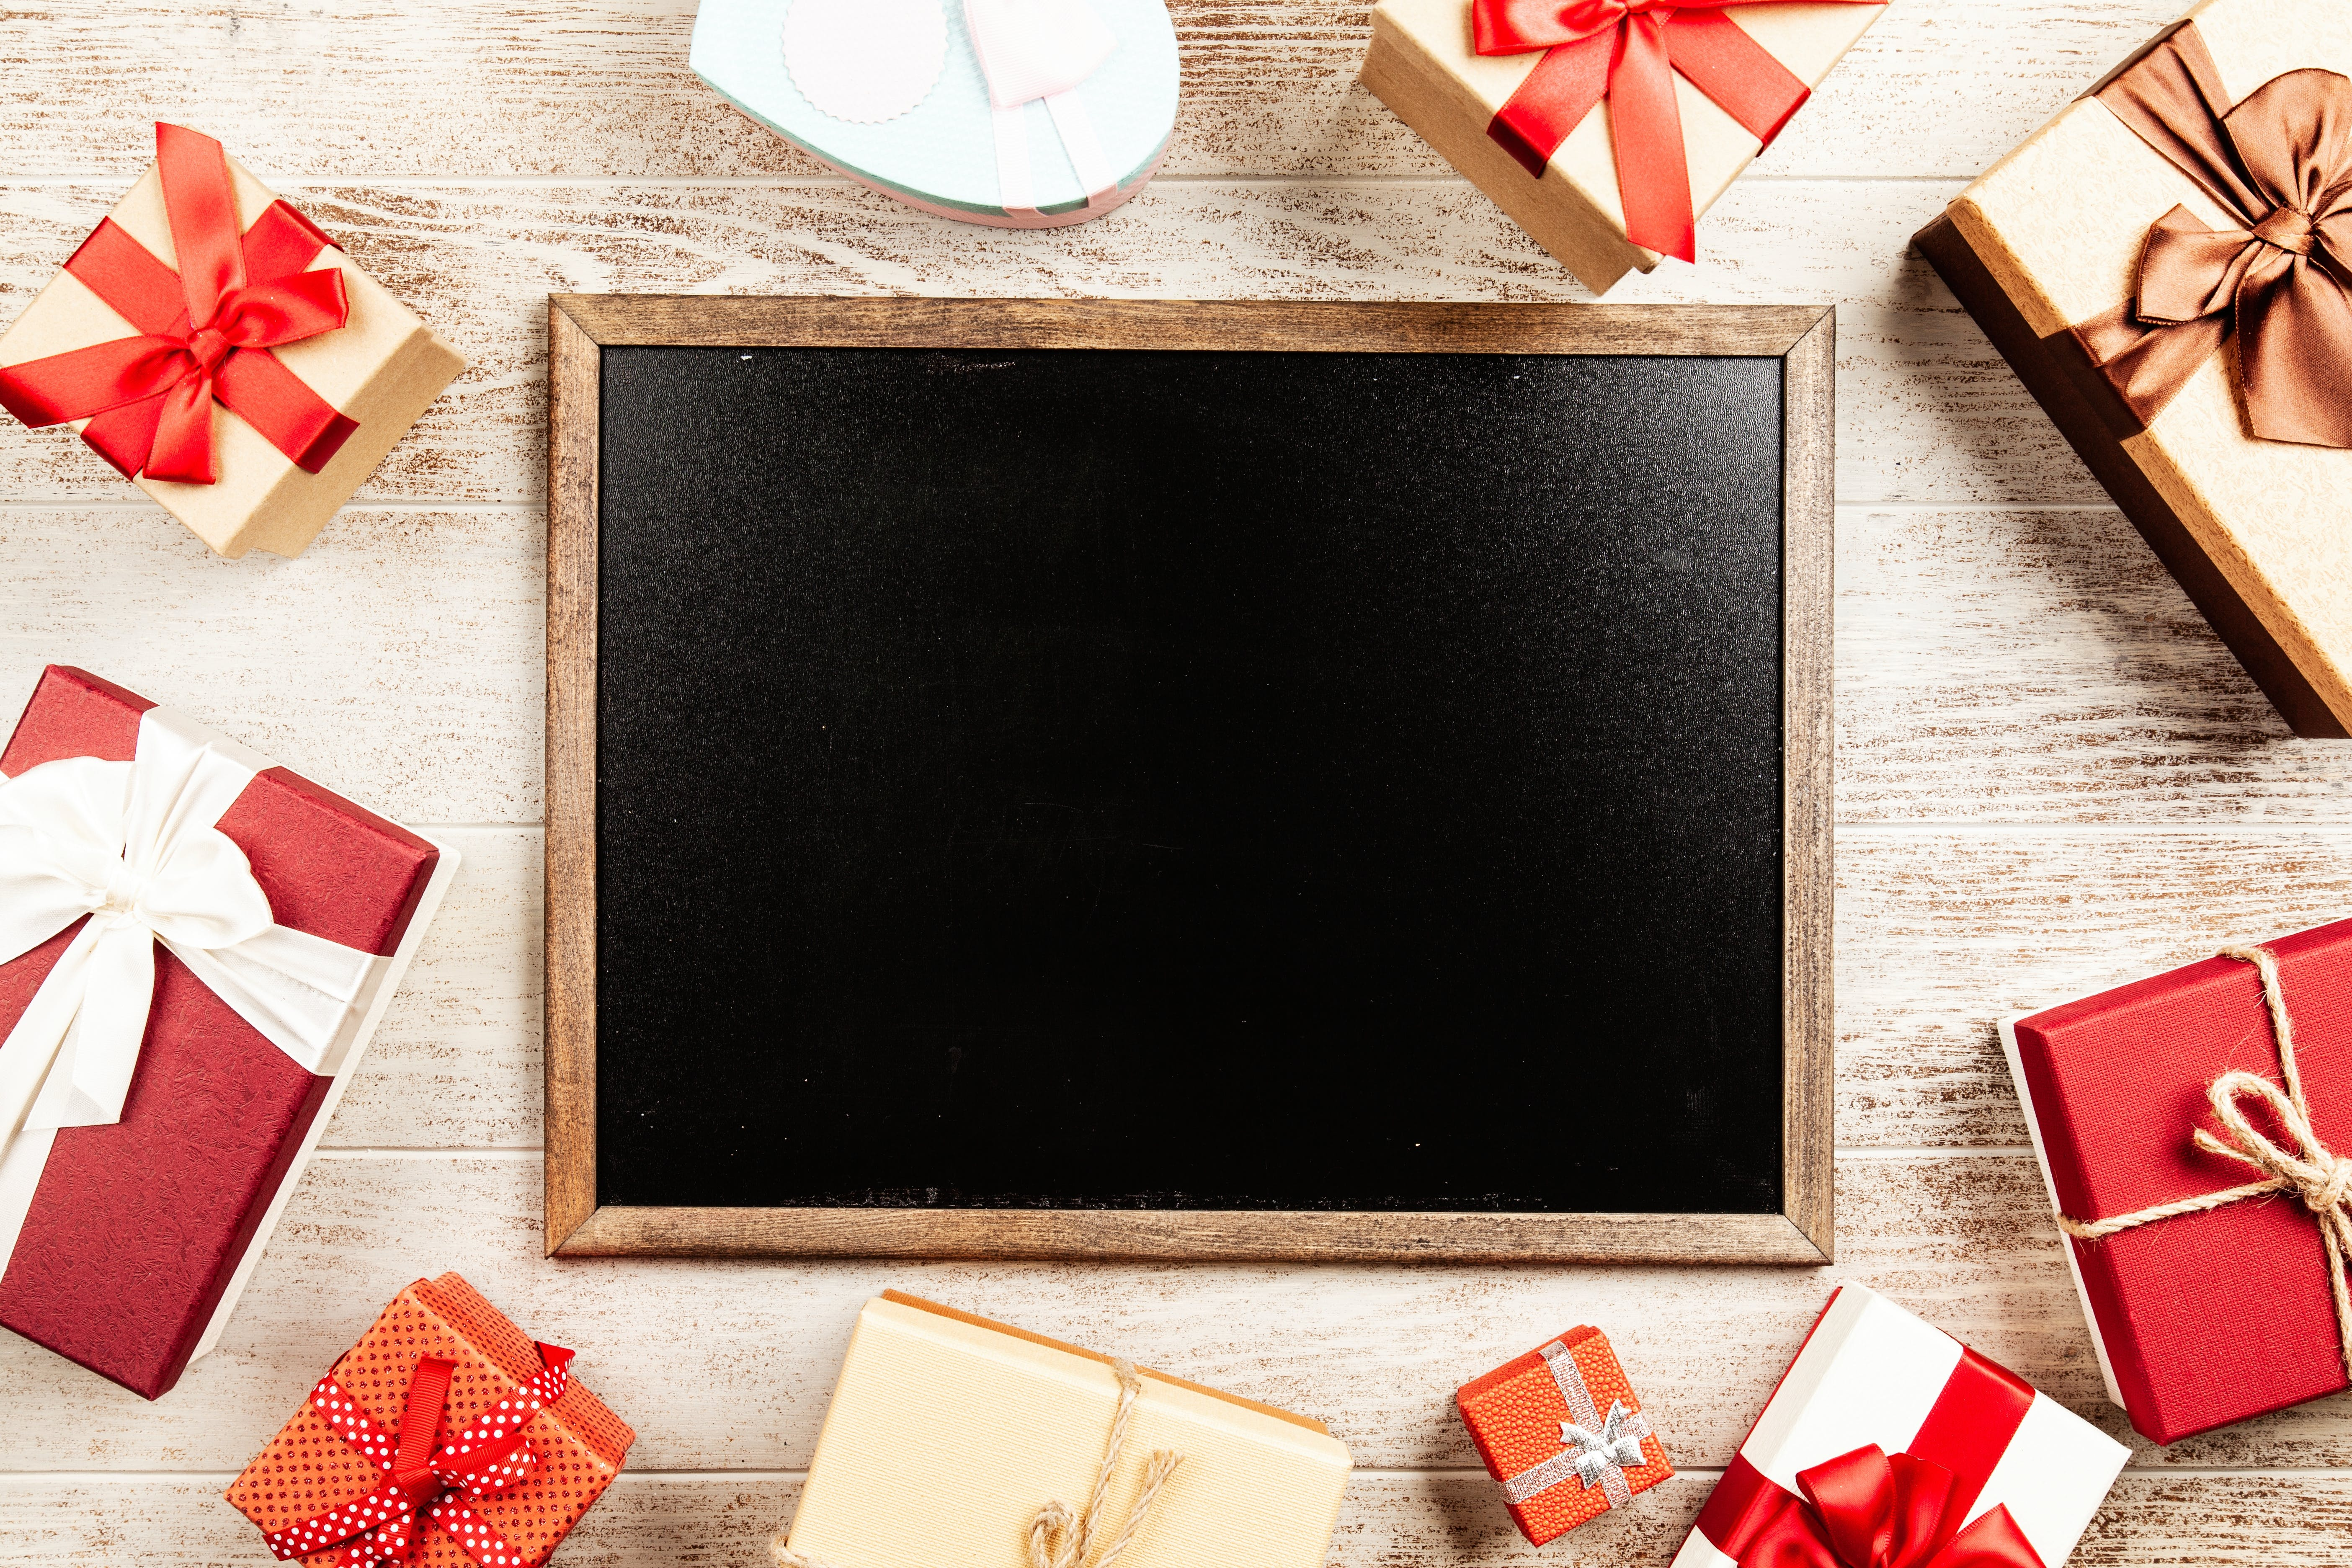 Chalkboard With Brown Wooden Frame Surrounded by Red Gift Boxes